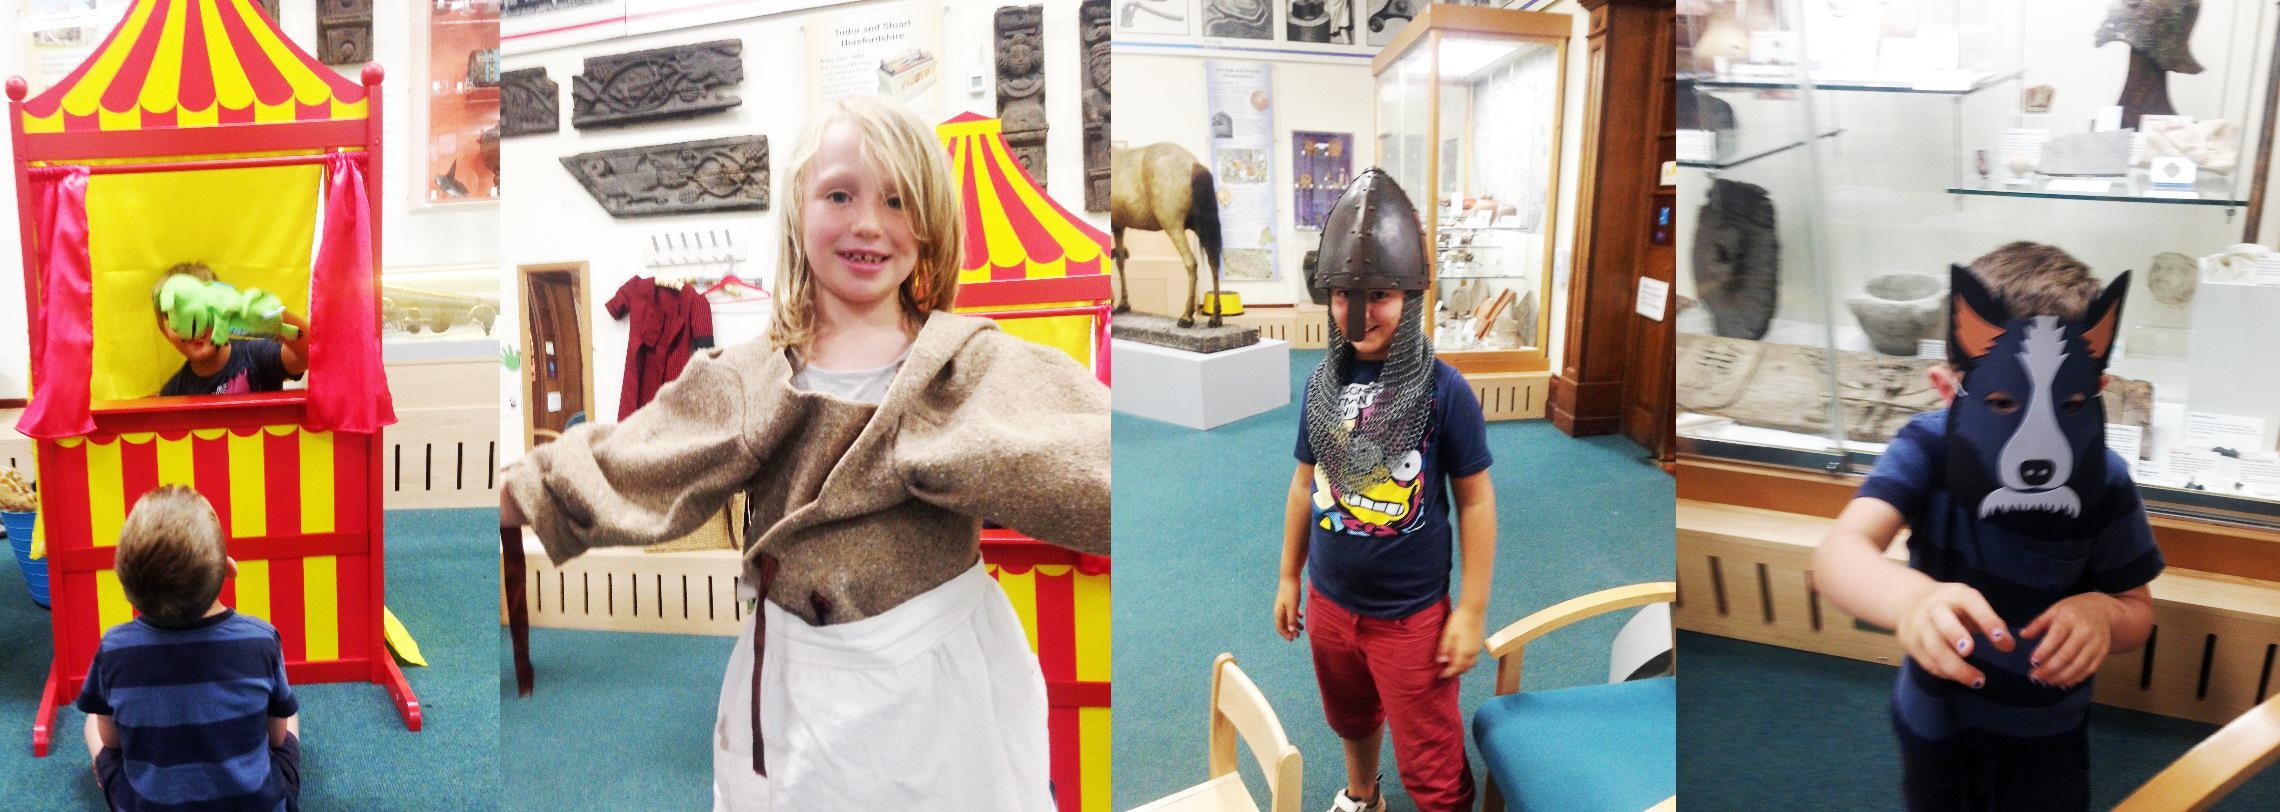 Children dressing up at the museum